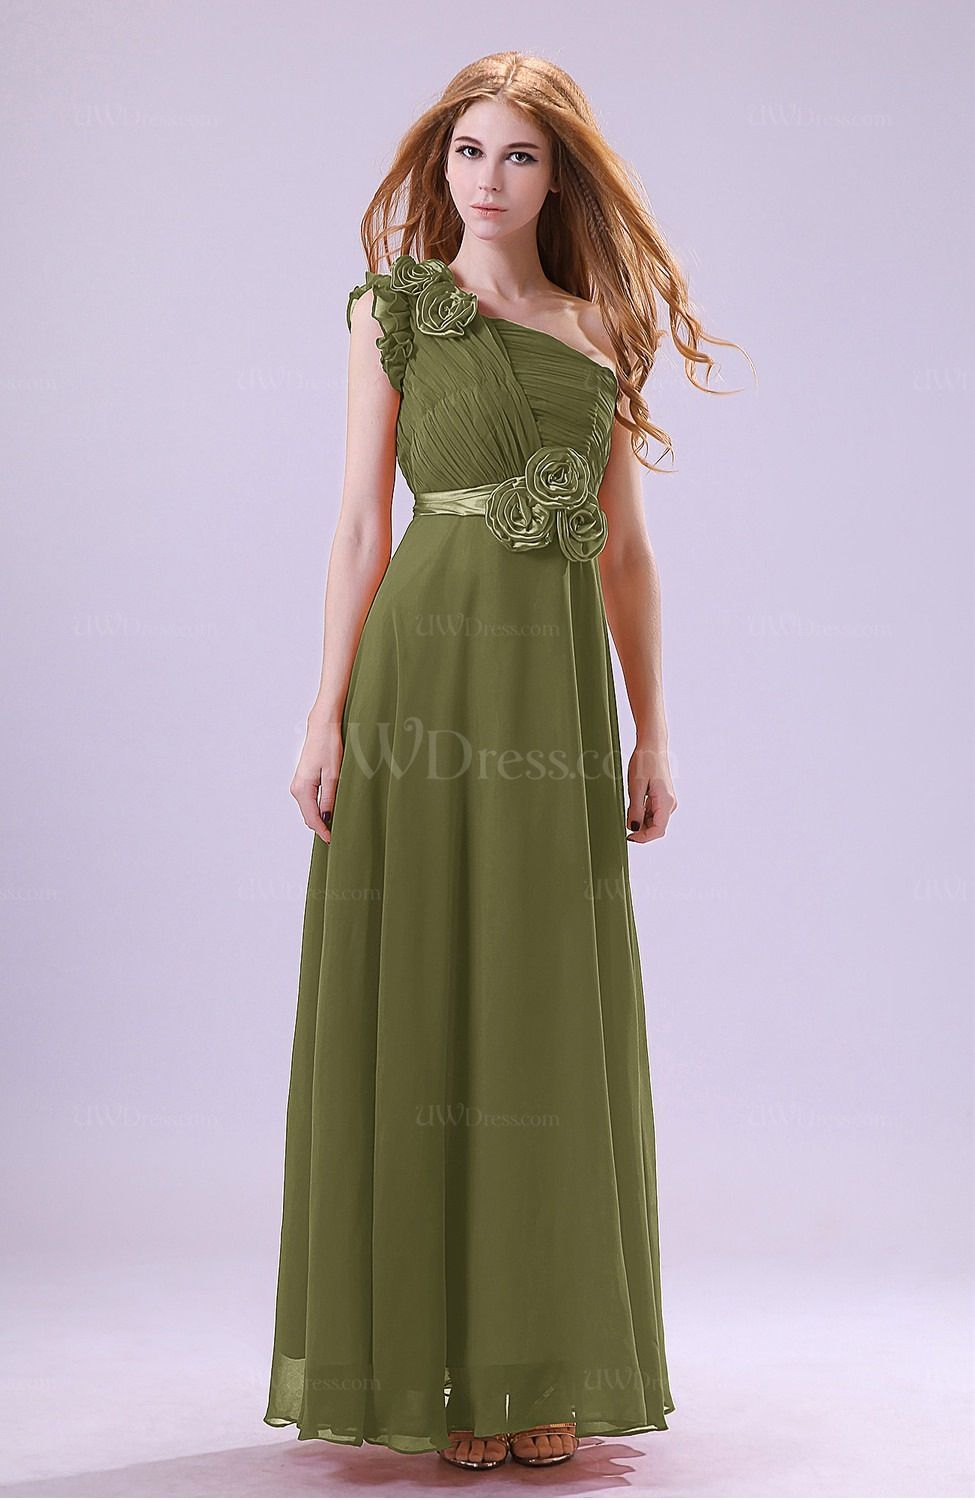 100 dollar wedding dress  Ivory and olive would be the colour theme and this dress just goes